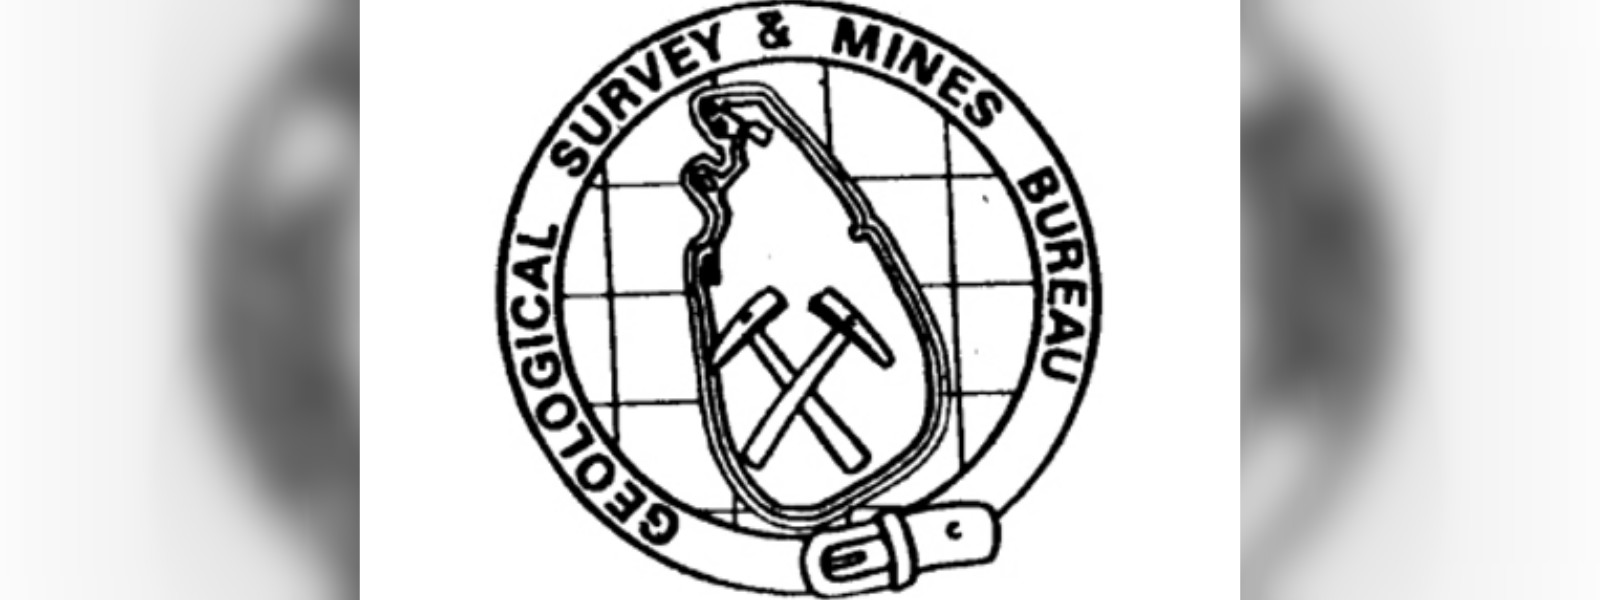 Geological Survey and Mines Bureau to conduct a study of river bed mineral deposits